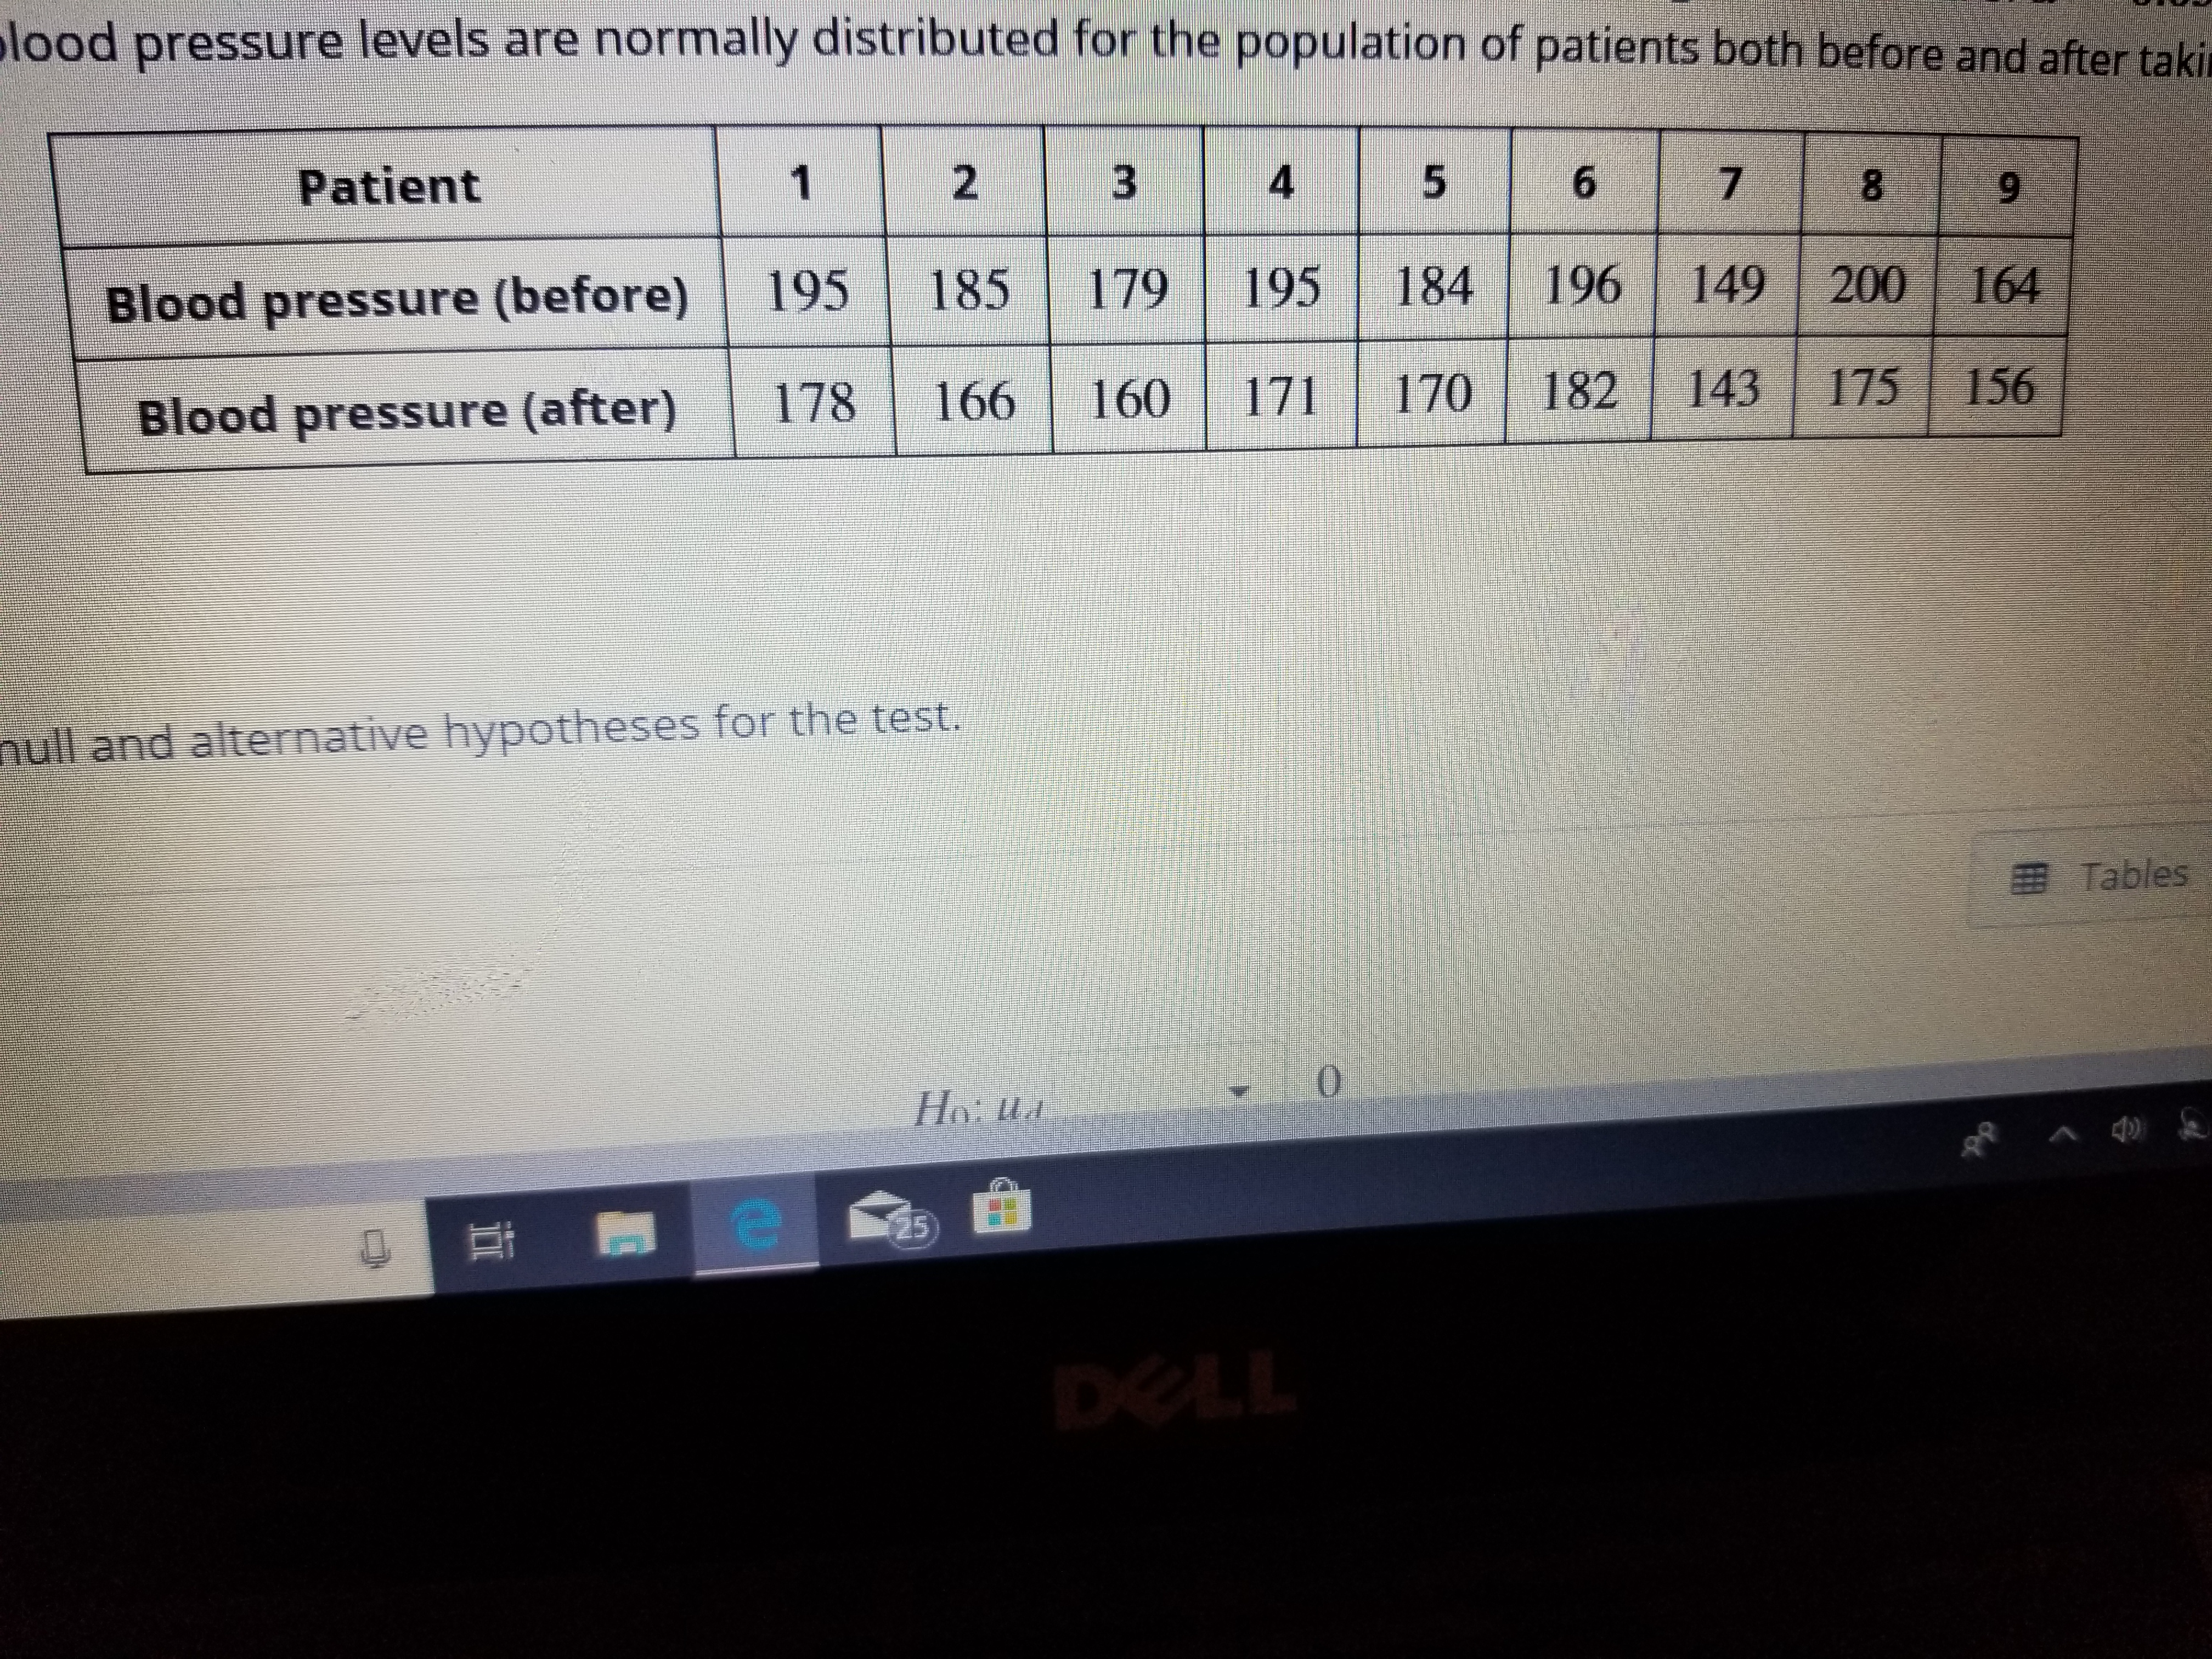 lood pressure levels are normally distributed for the population of patients both before and after taki Patient 4 7 Blood pressure (before 195 185 179 195 184196 149 200 164 Blood pressure (after) 178 66 160 171 170 182 143 175 156 null and alternative hypotheses for the test. E Tables 25